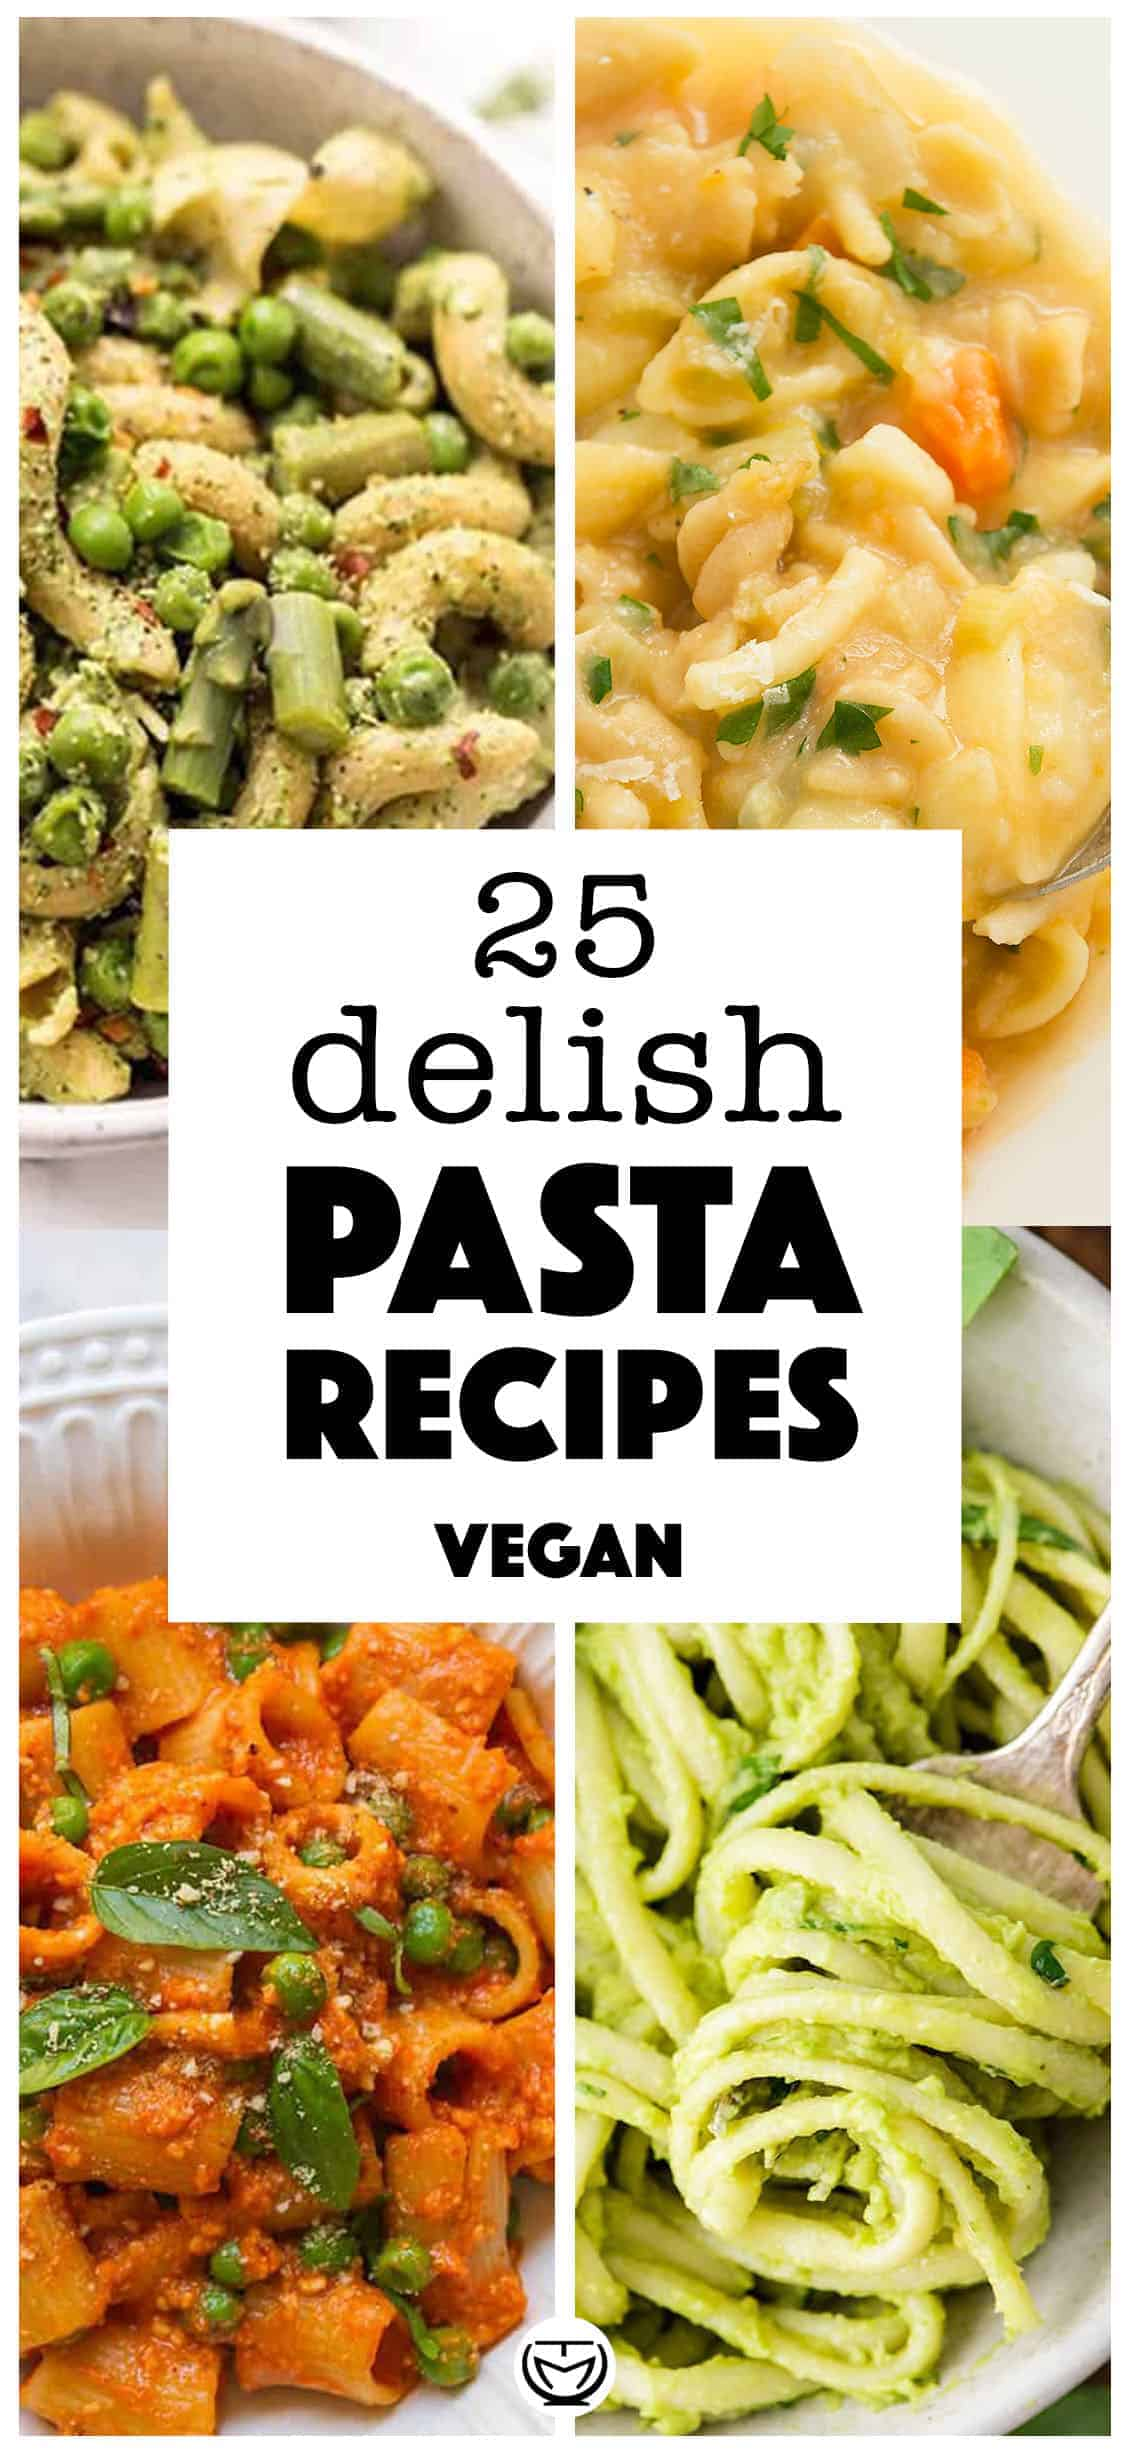 25 Amazing vegan pasta recipes you will love! #veganrecipes #pastarecipes